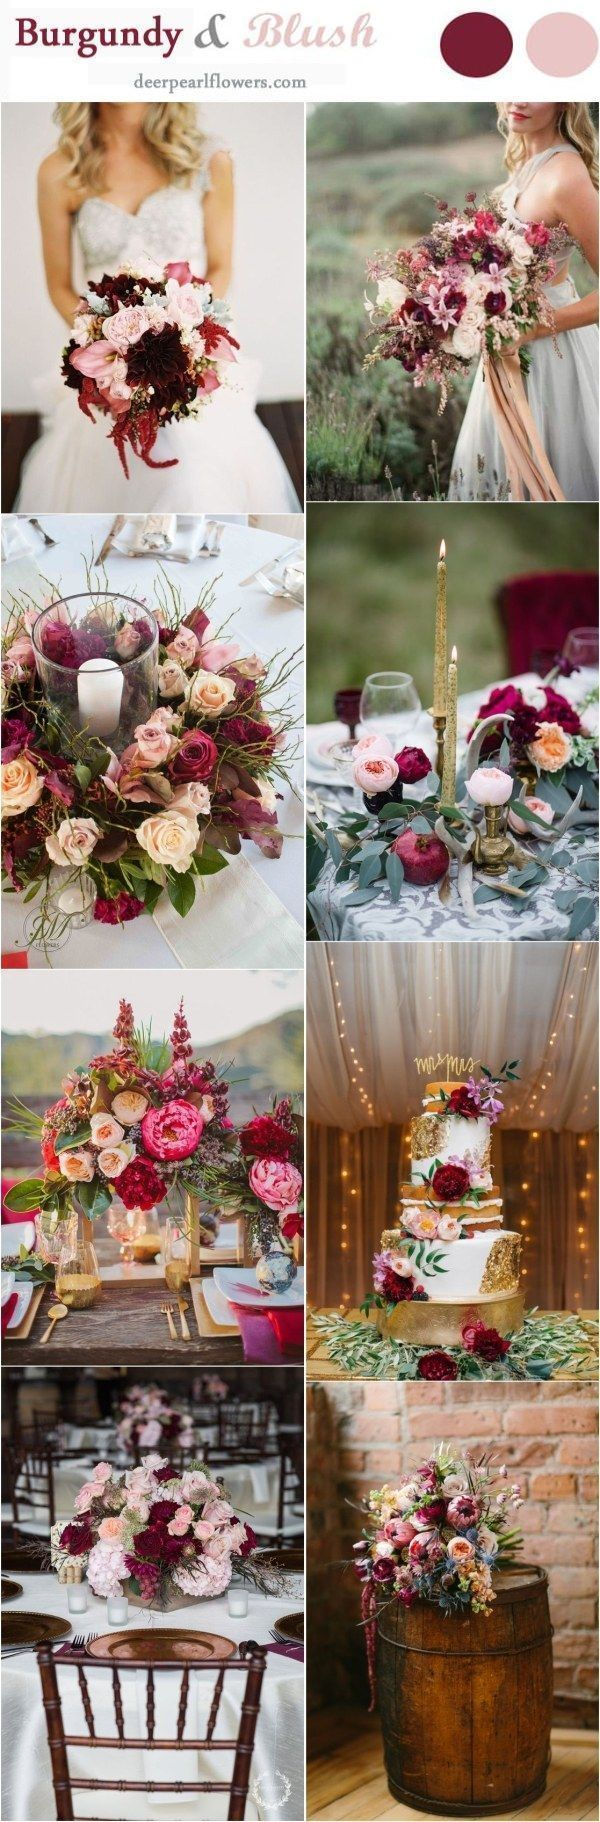 Burgundy and Blush Fall Wedding Color Ideas / http://www.deerpearlflowers.com/burgundy-and-blush-fall-wedding-ideas/ #Weddingscolors #weddingideas